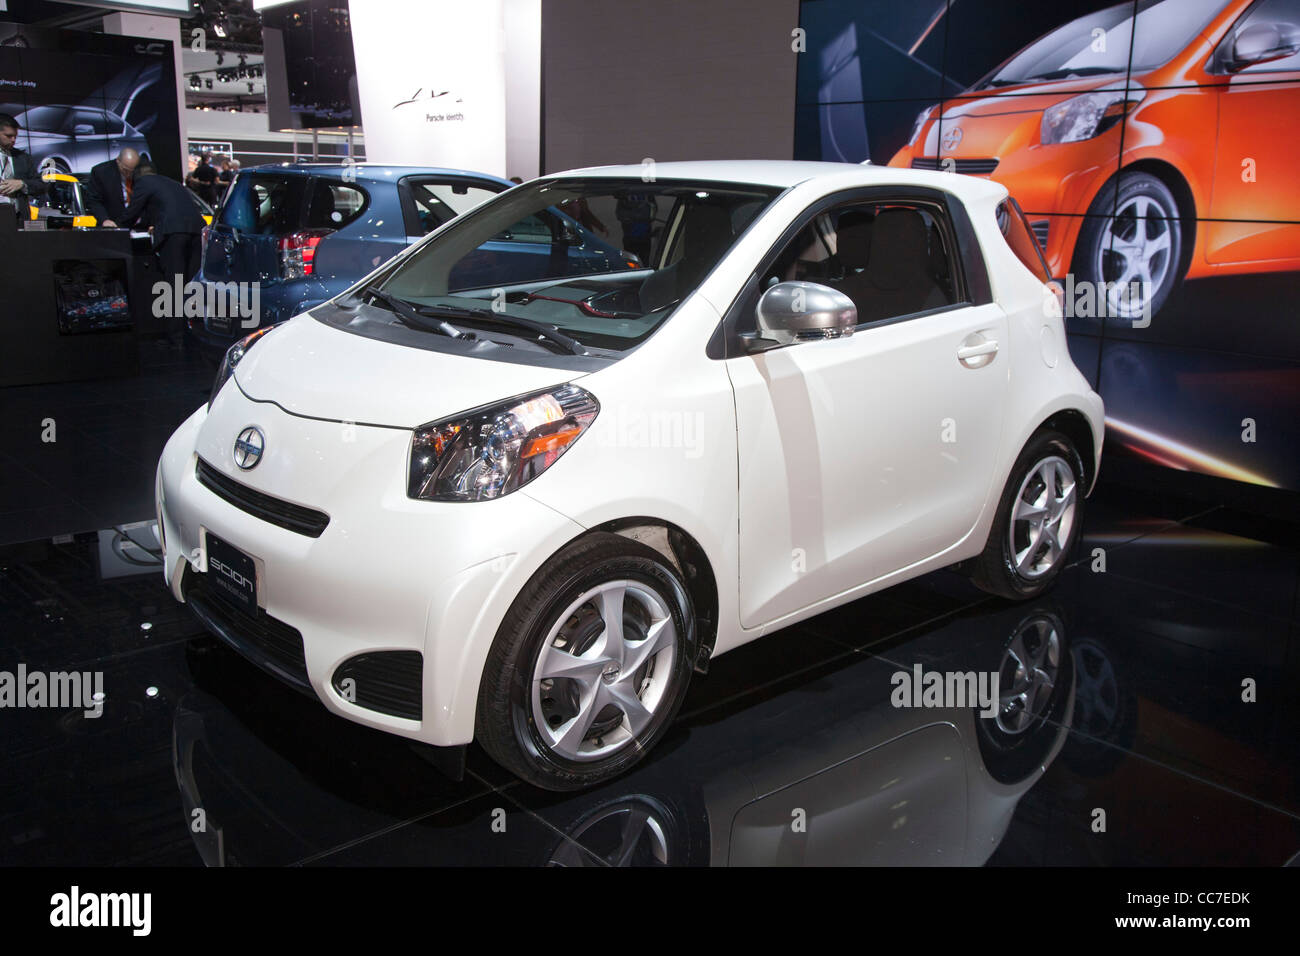 Detroit, Michigan - The 2012 Scion IQ on display at the North American International Auto Show. - Stock Image